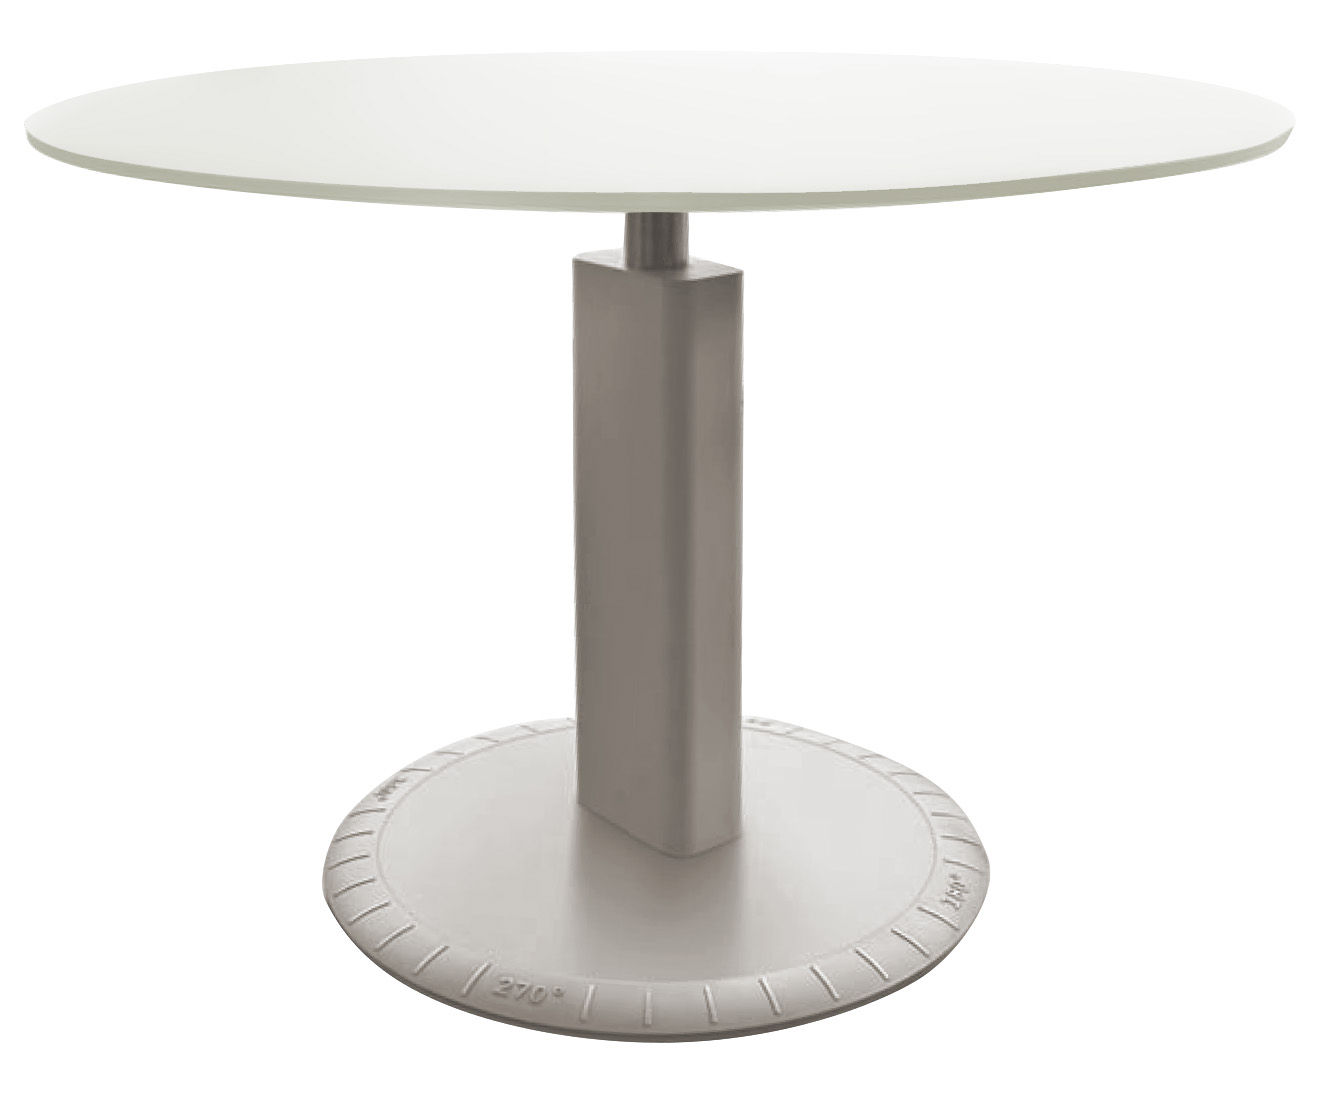 360 adjustable height table light grey by magis - Table basse hauteur ajustable ...